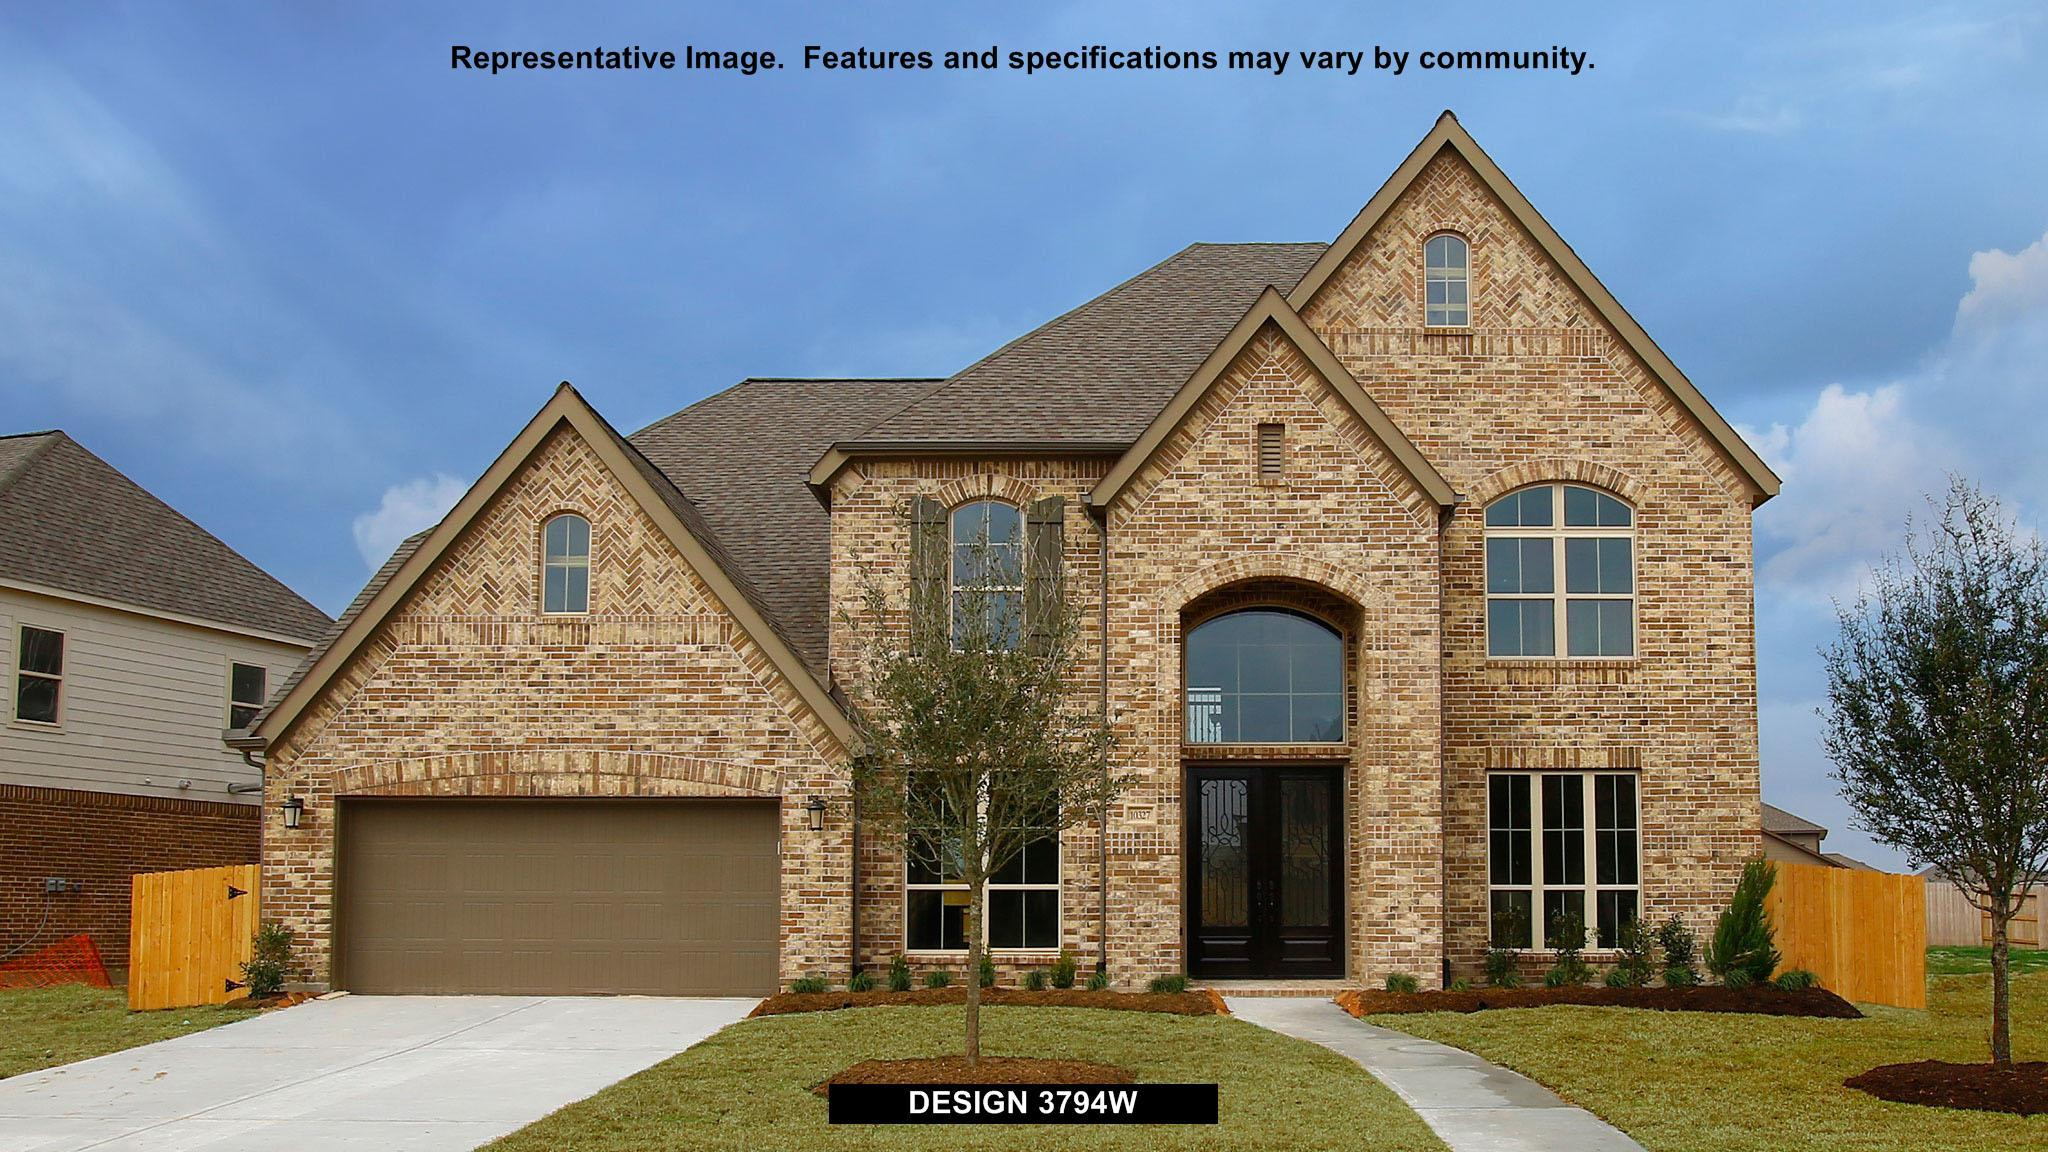 3794W - Bella Vista 65': San Antonio, TX - Perry Homes